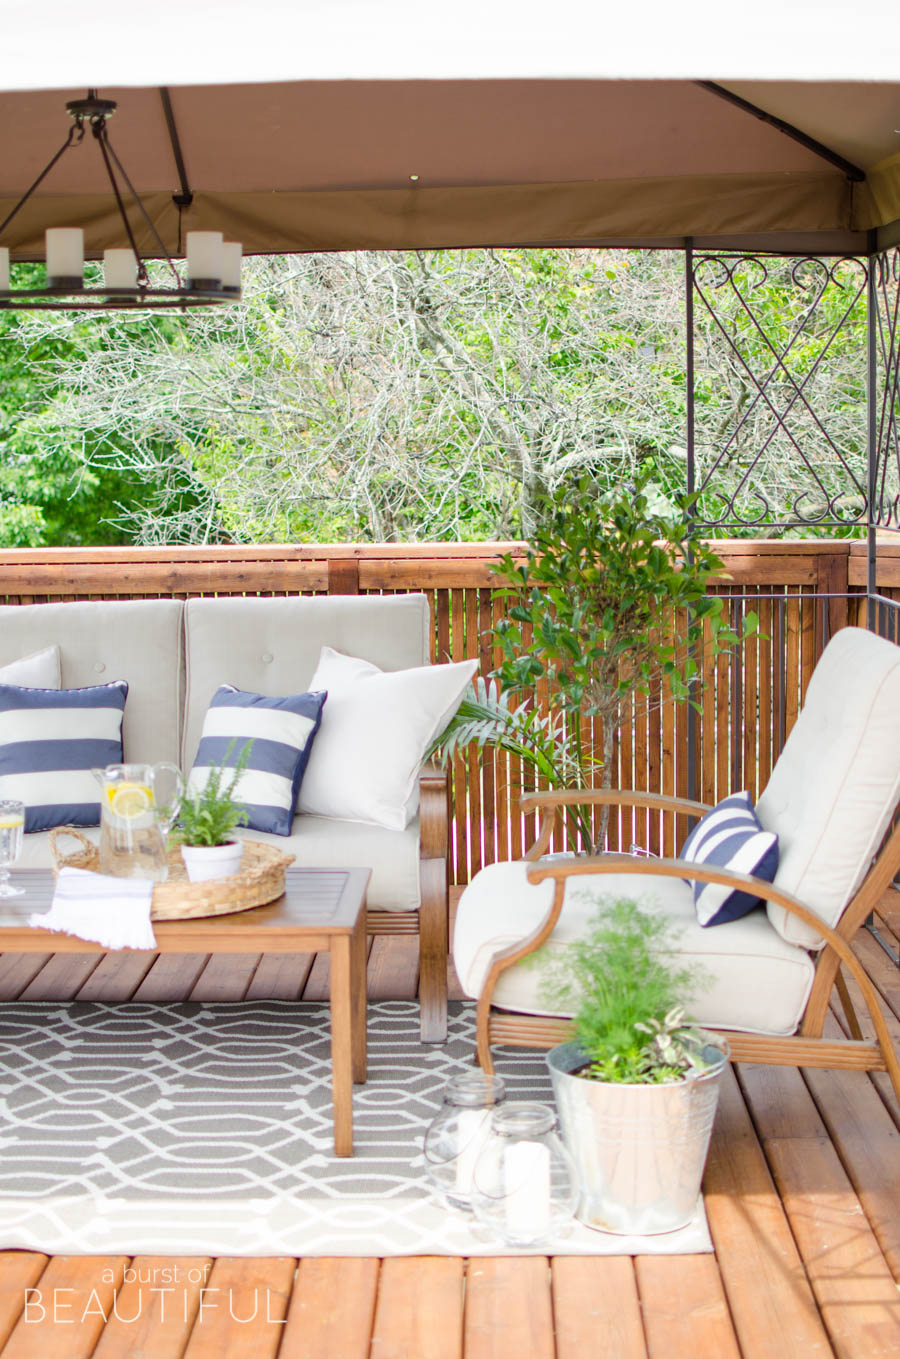 Love this cozy outdoor space and the wood furniture